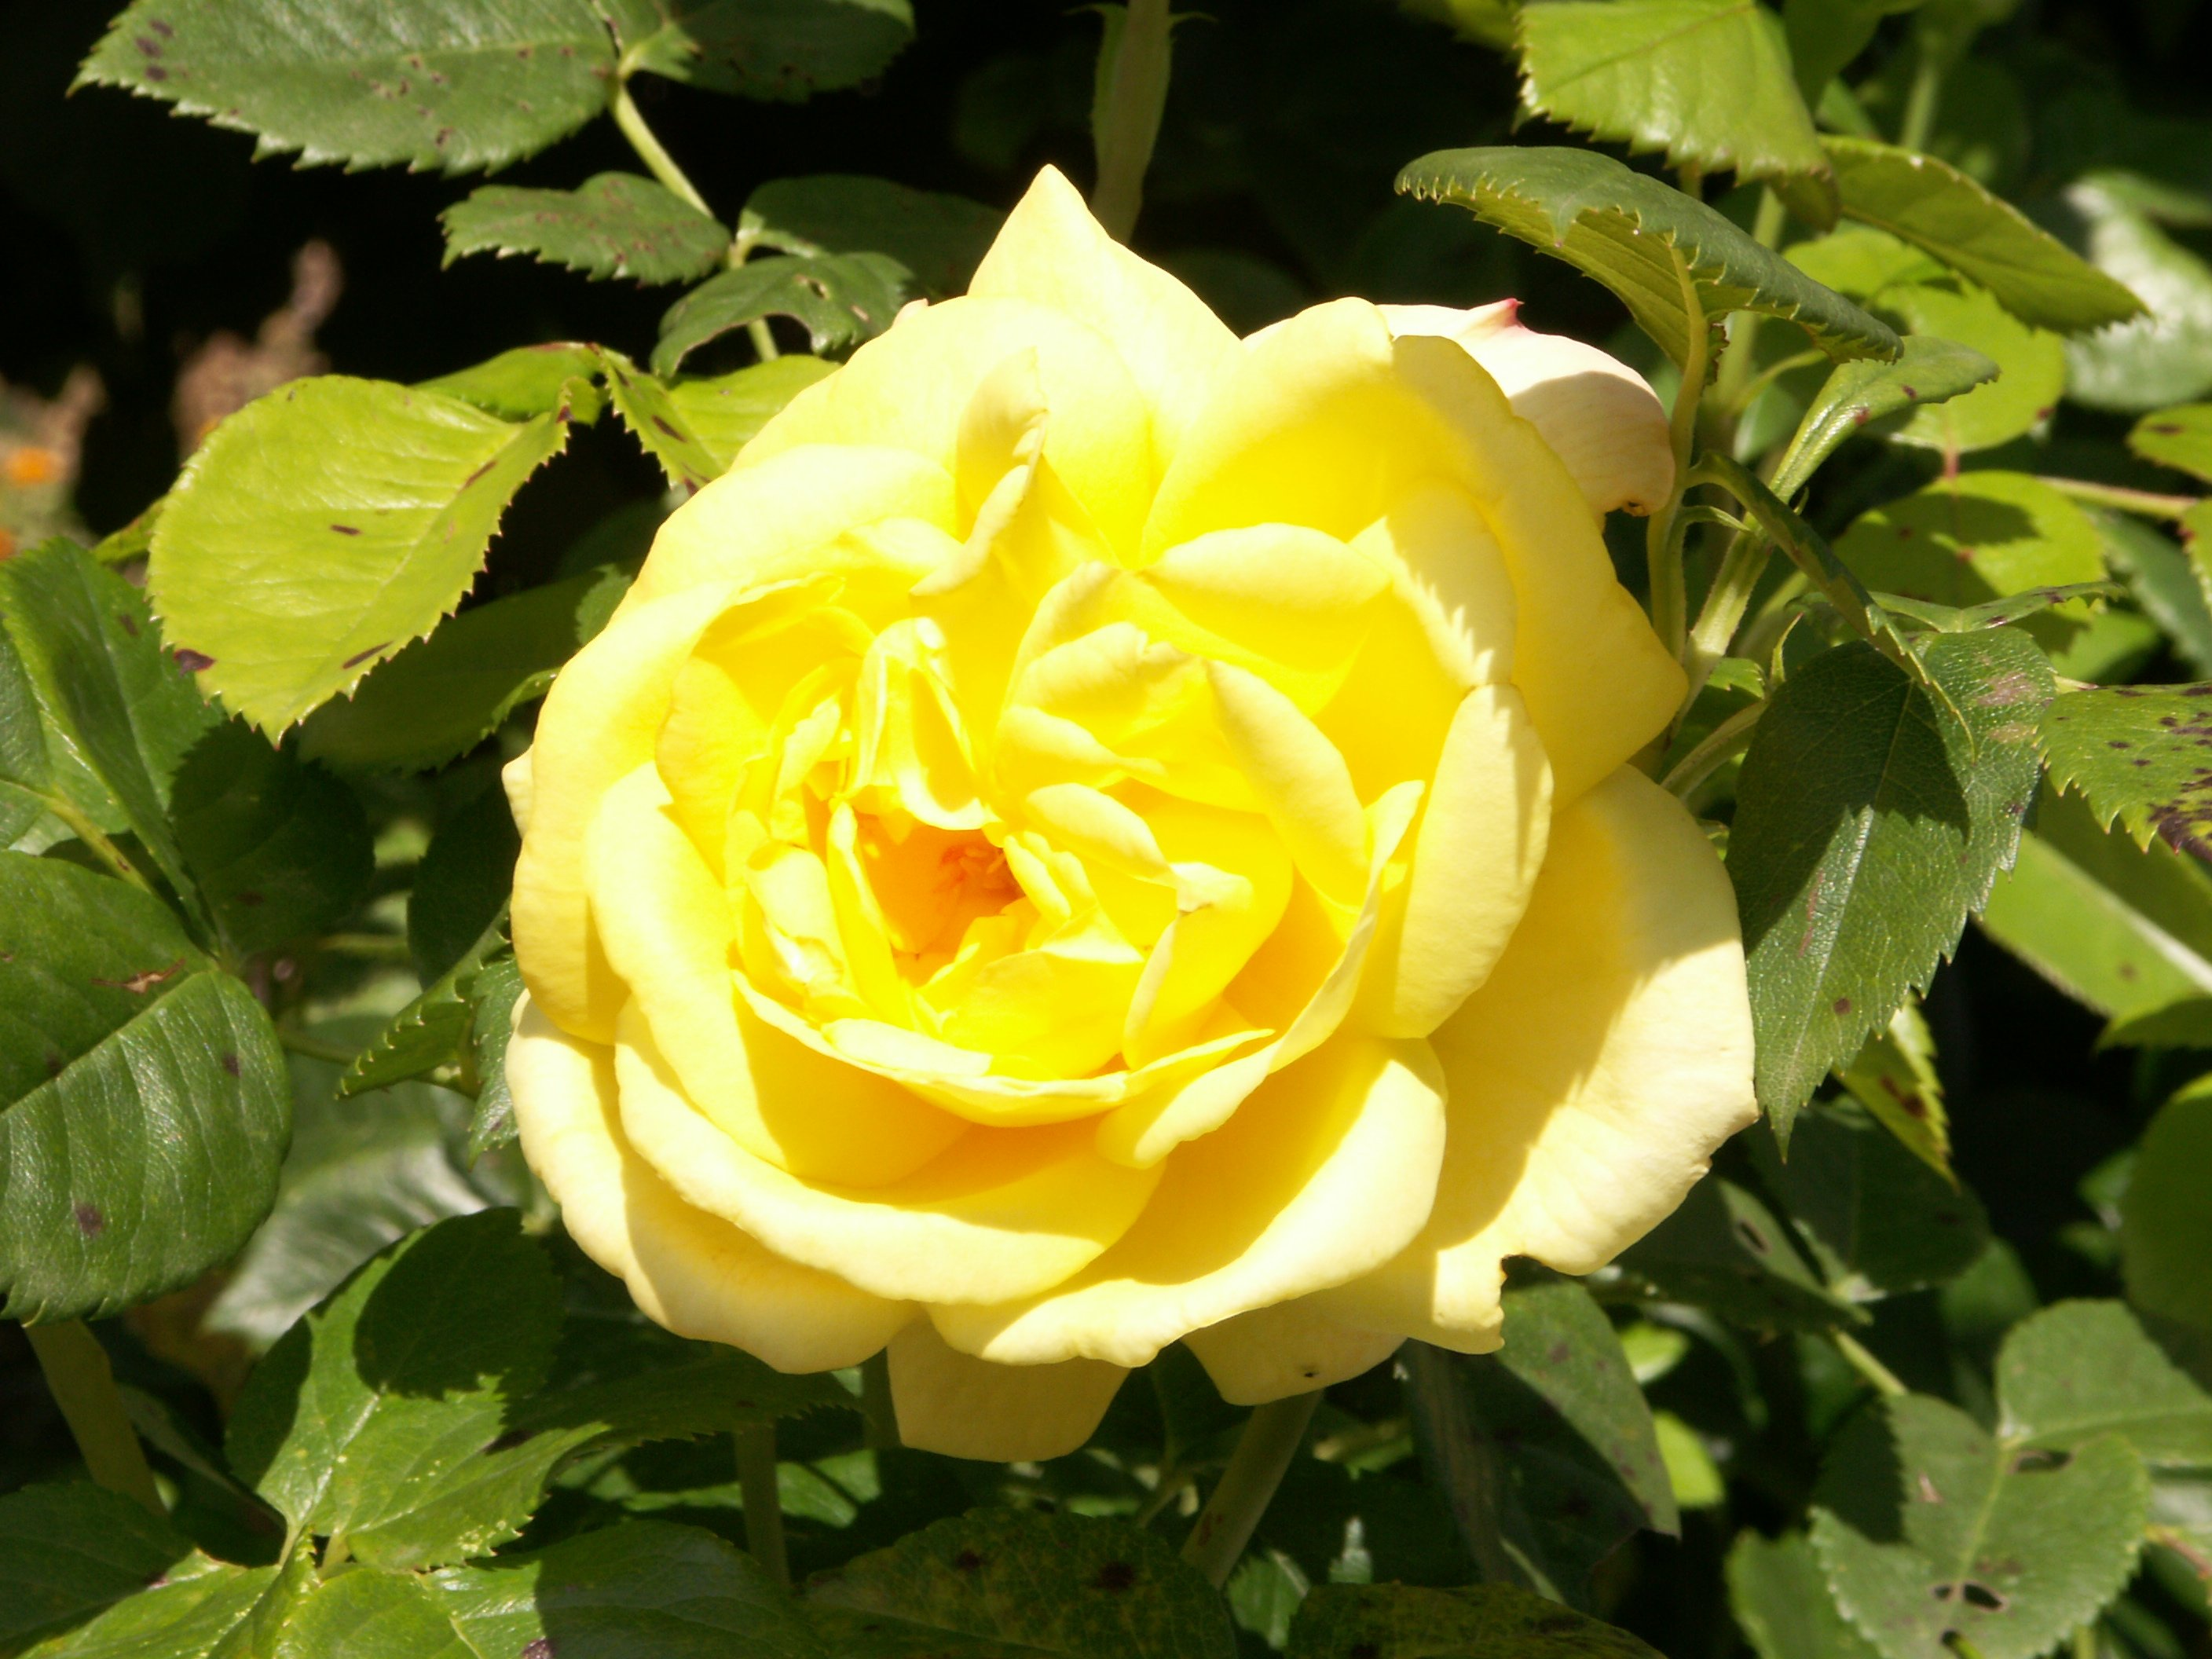 Light yellow roses meaning file yellow rose gelbe rose